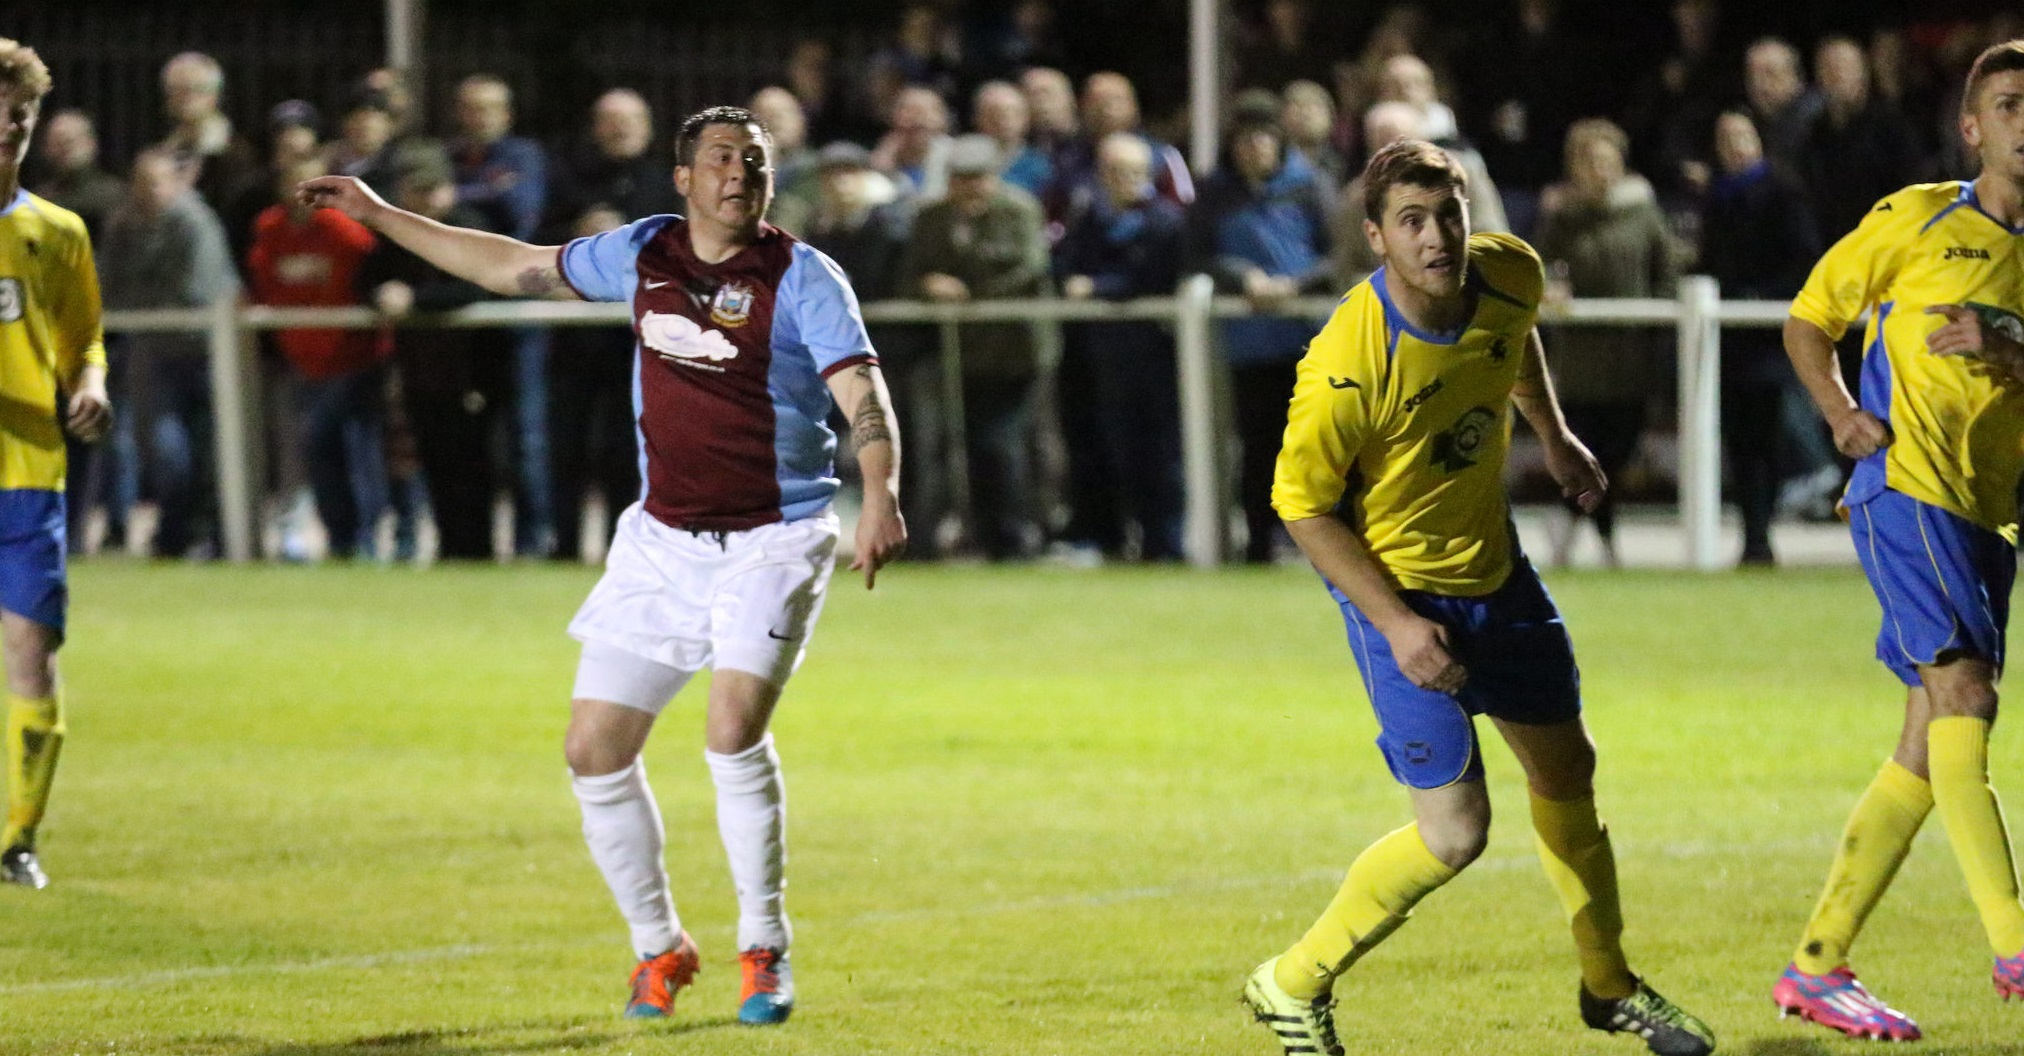 In Pictures: South Shields 3-0 Billingham Synthonia